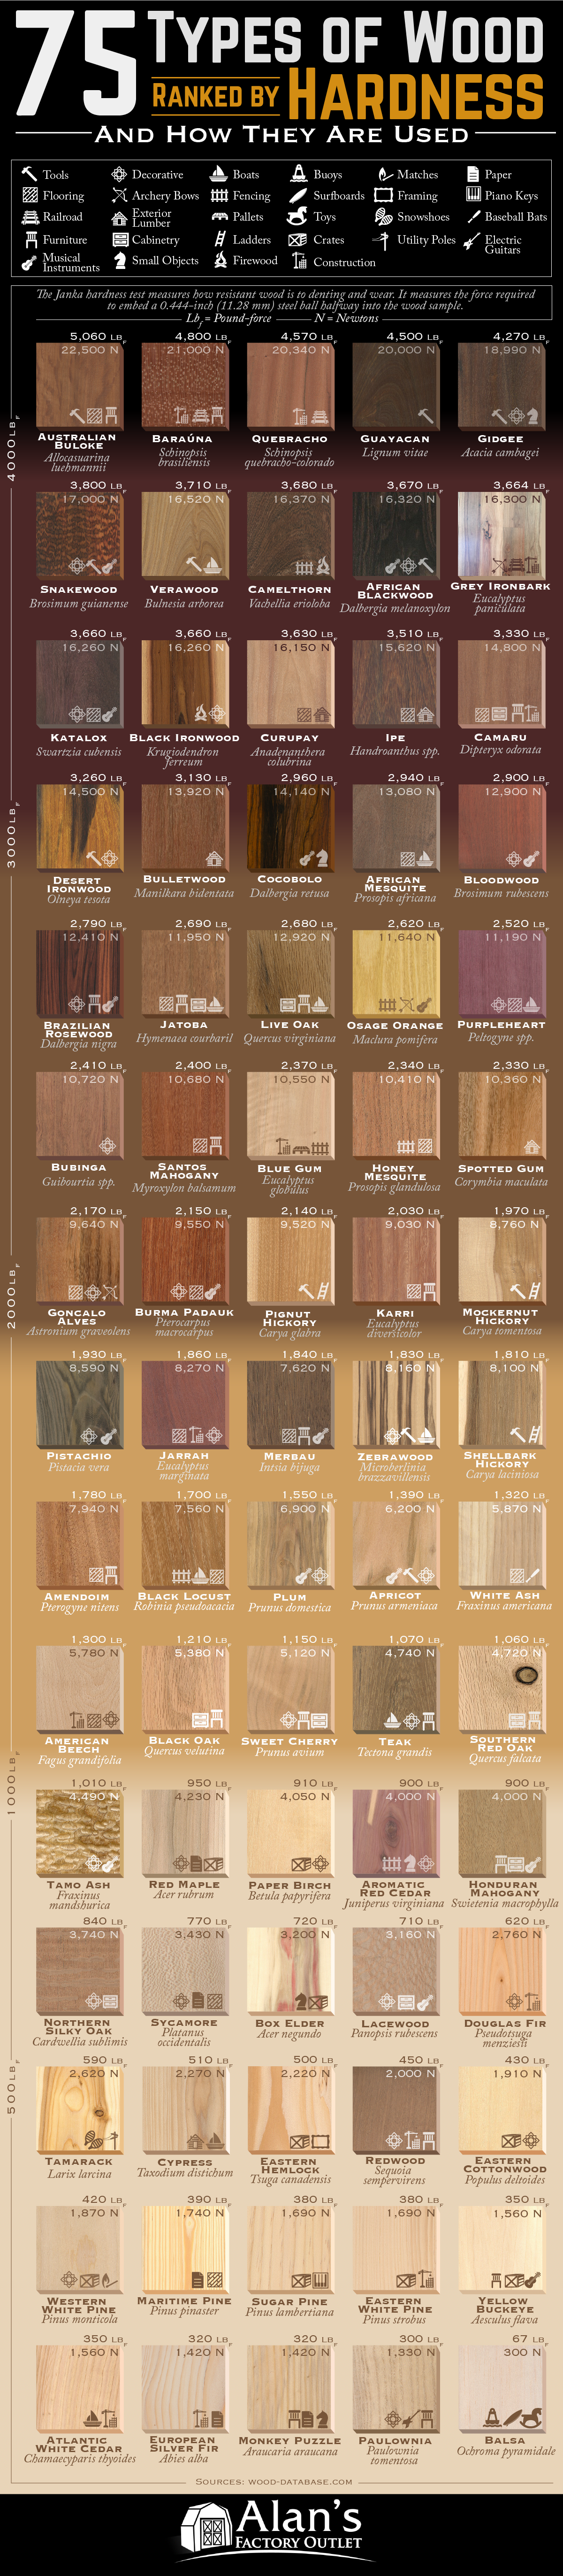 75 Types Of Wood Ranked By Hardness Archdaily